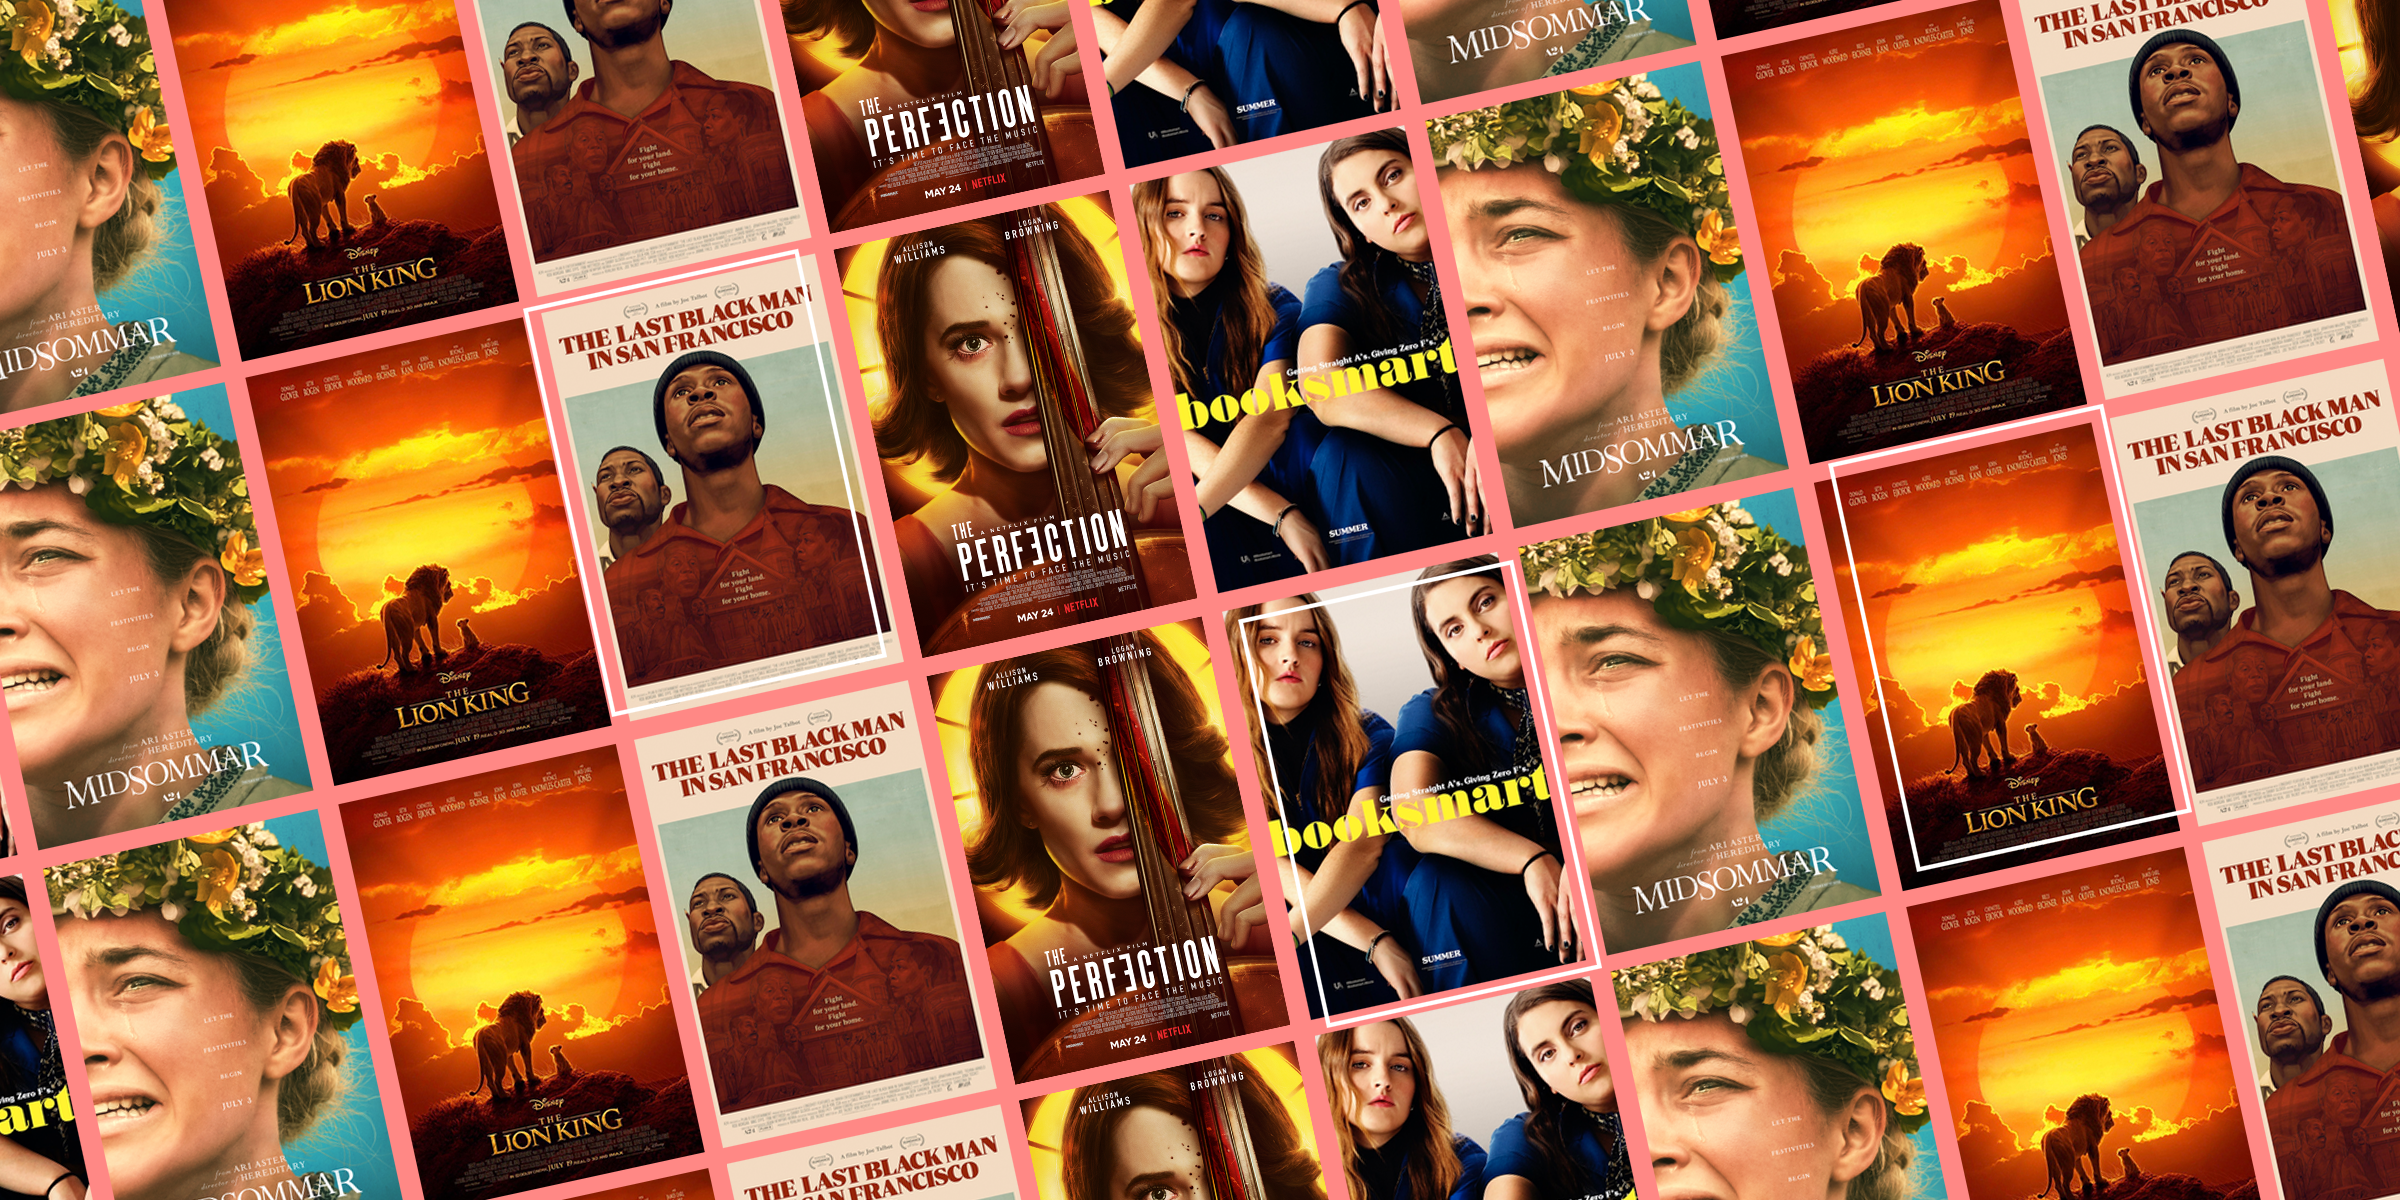 Angela Nicholas Movies summer 2019 movie preview: 20 films to put on your must